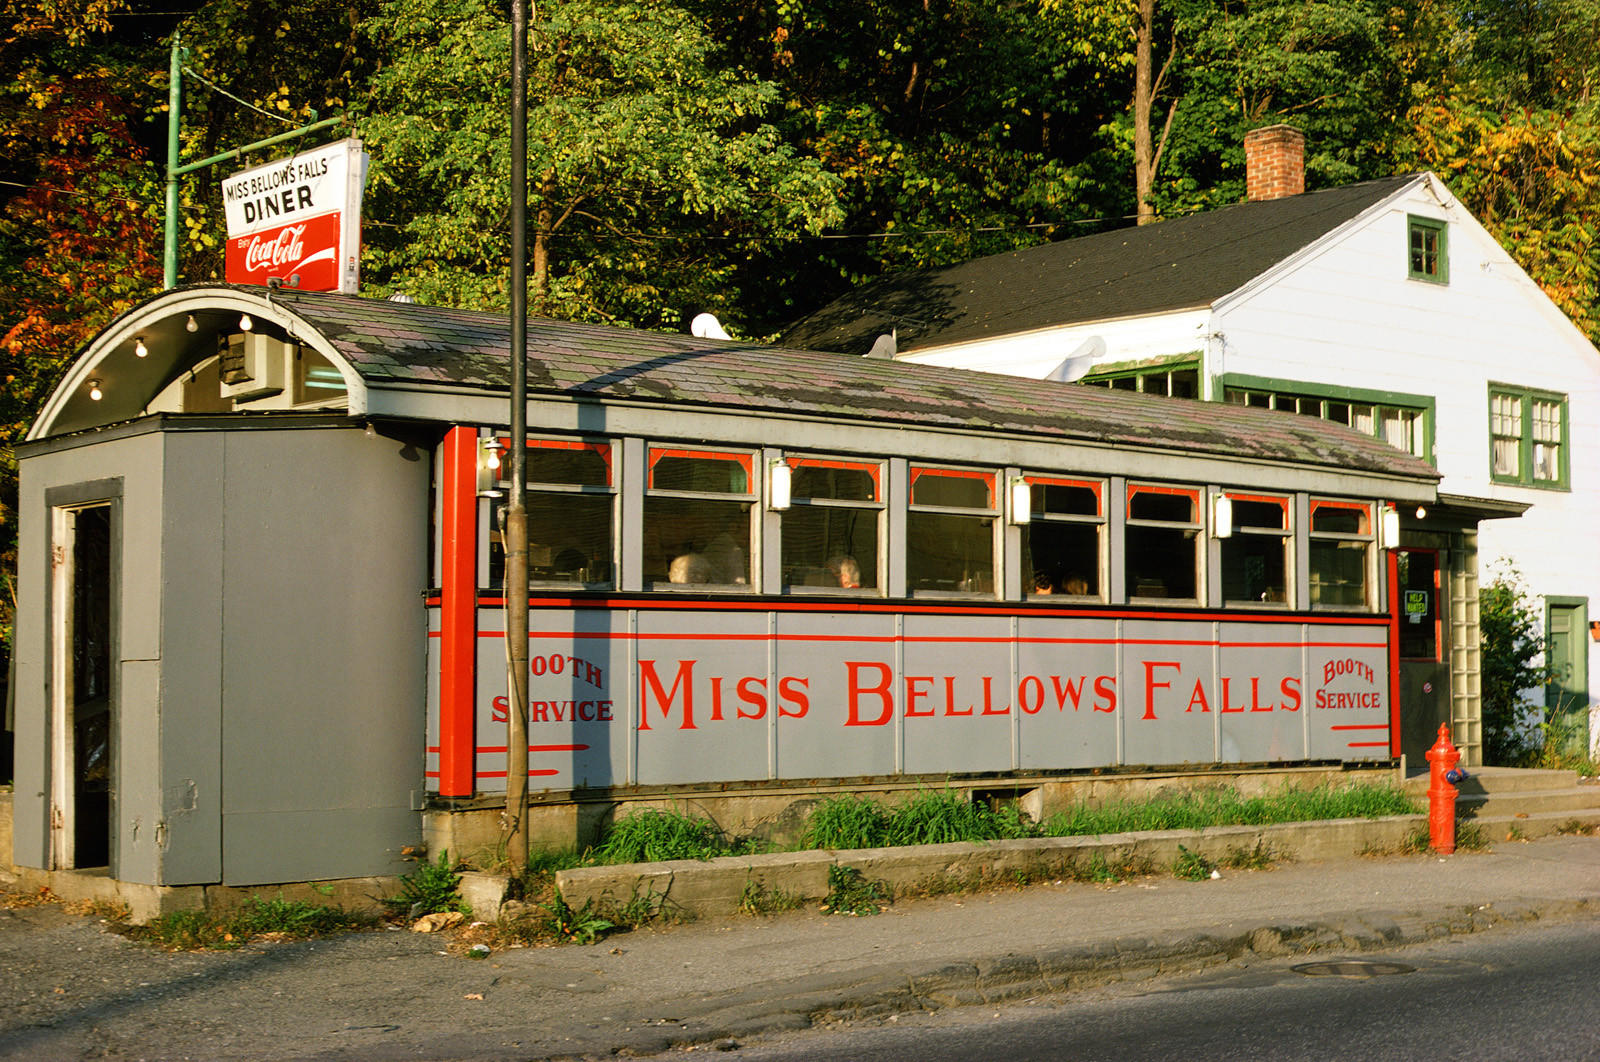 Miss Bellows Falls Diner, Bellows Falls, Vt.